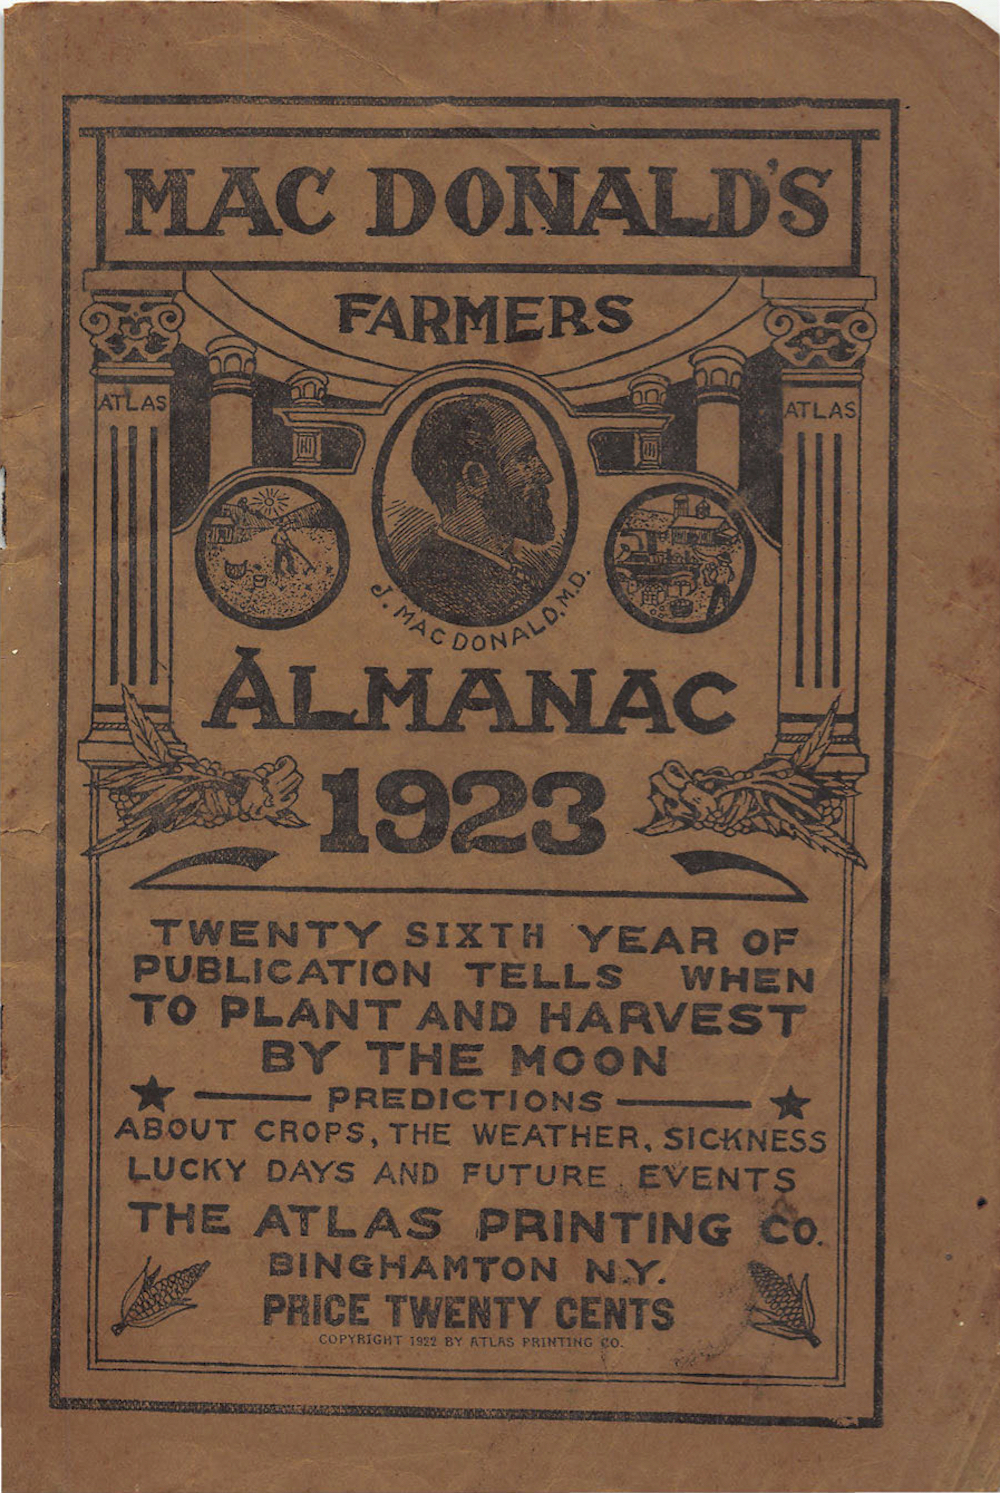 macdonald u0026 39 s farmers almanac and dream book  iapsop